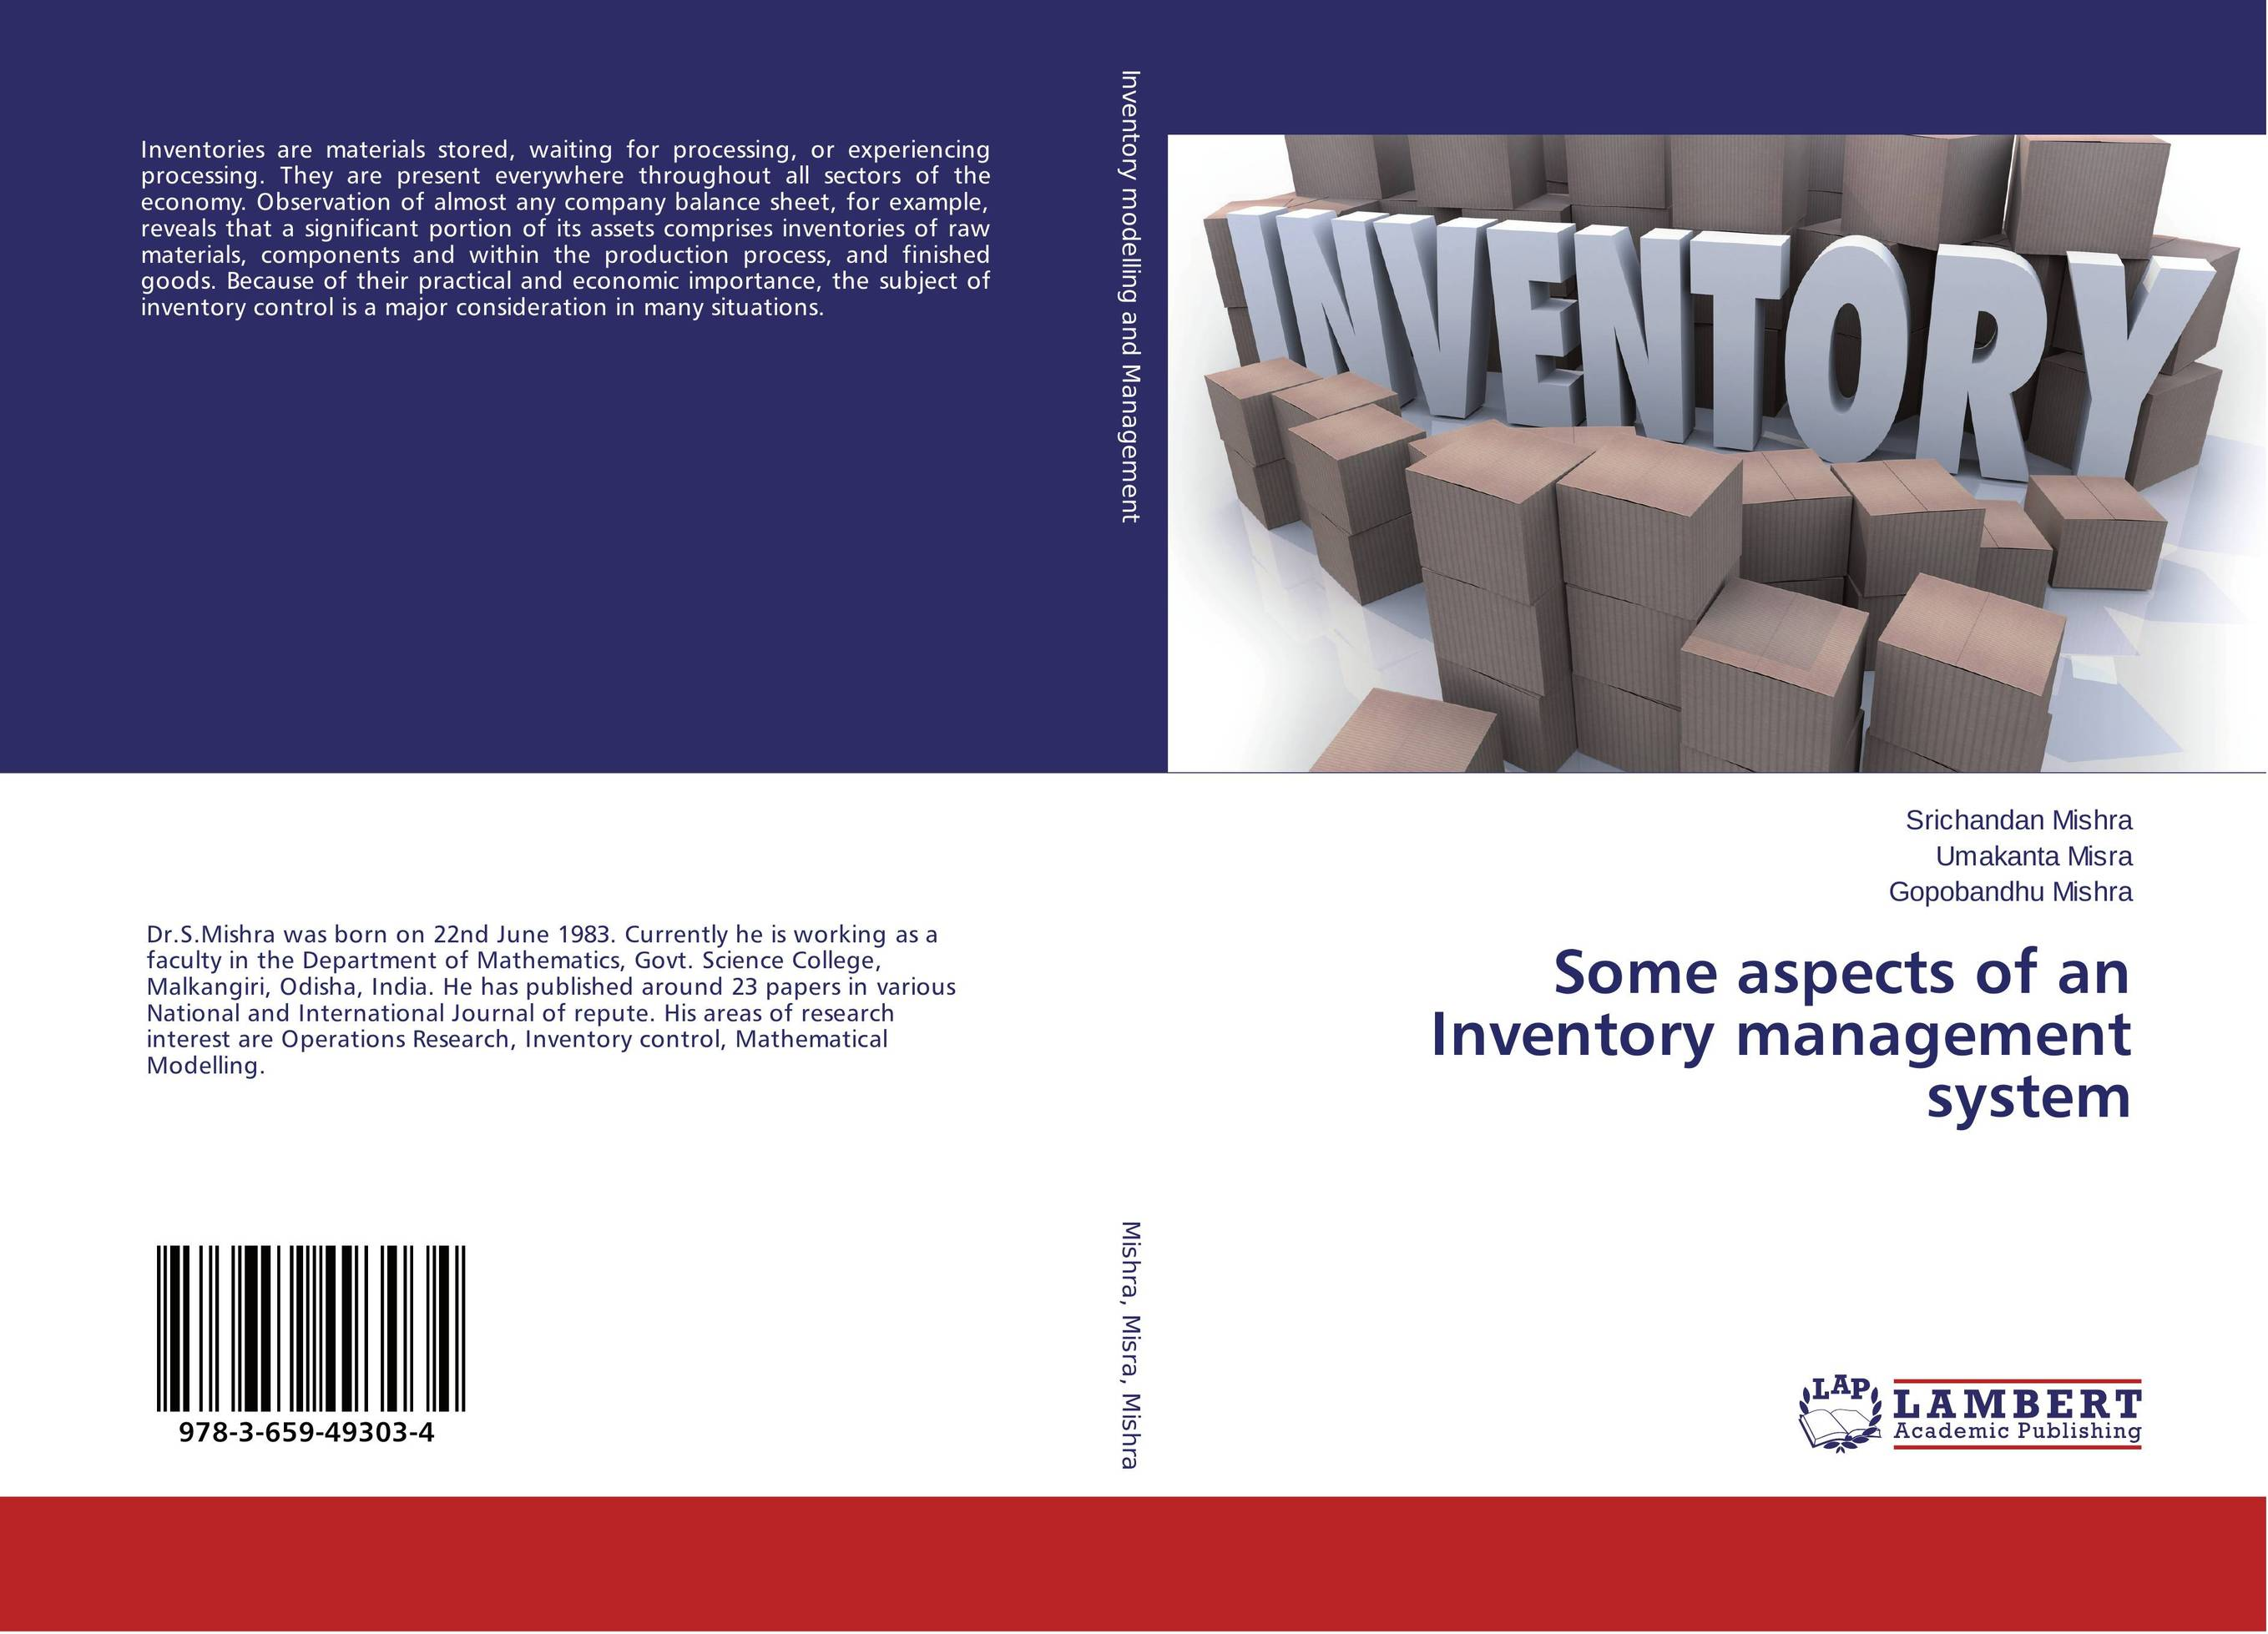 Some aspects of an Inventory management system